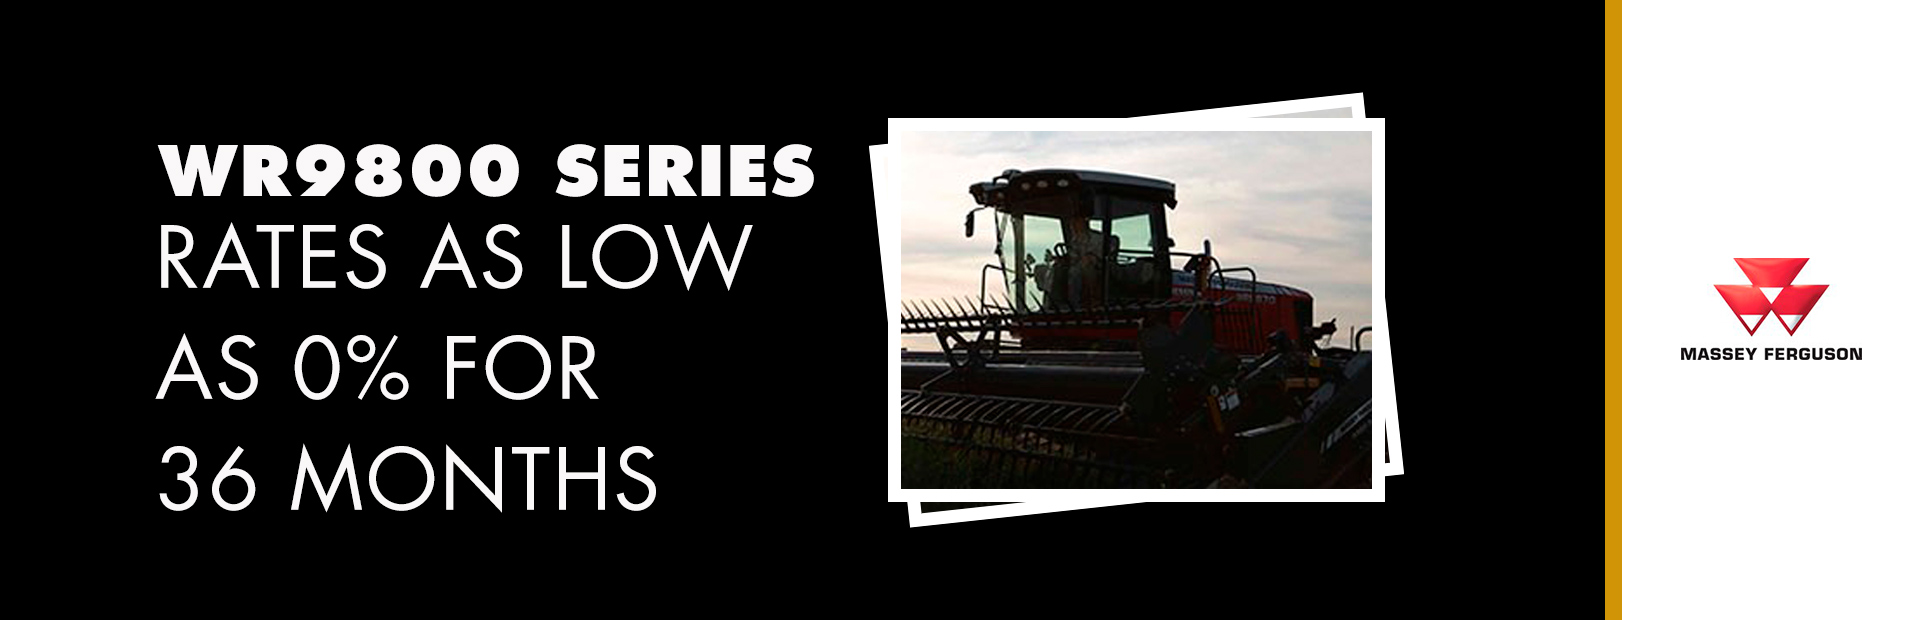 Massey Ferguson: WR9800 Series - Rates as low as 0% for 36 Months